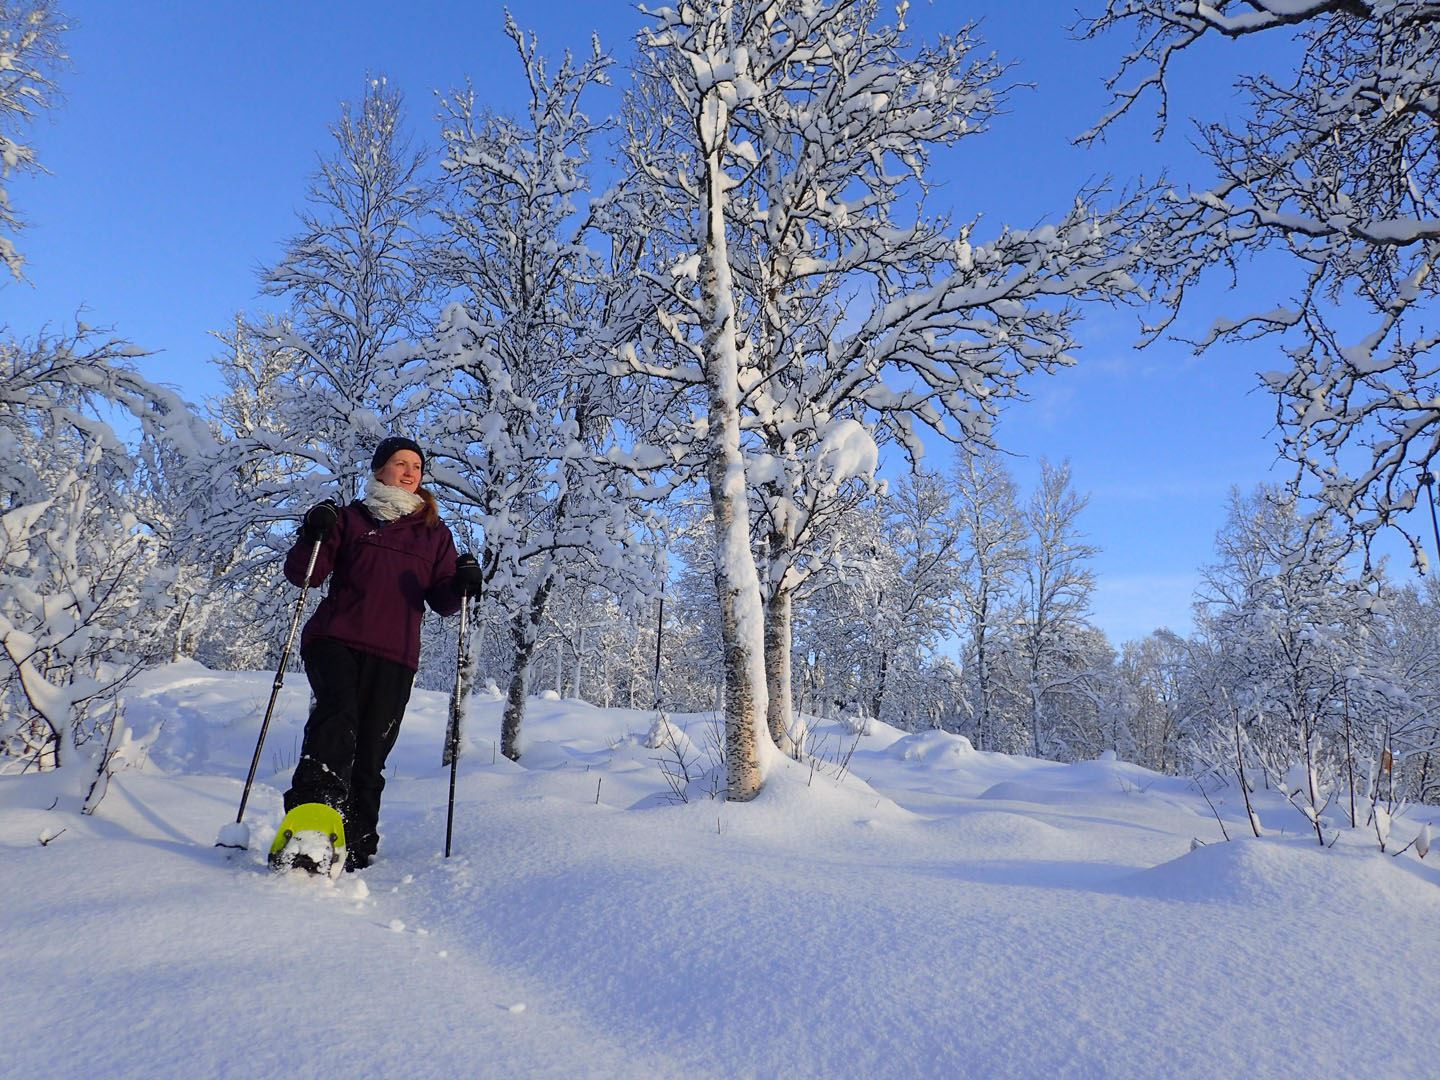 005. Guided easy snowshoeing with a visit to local café